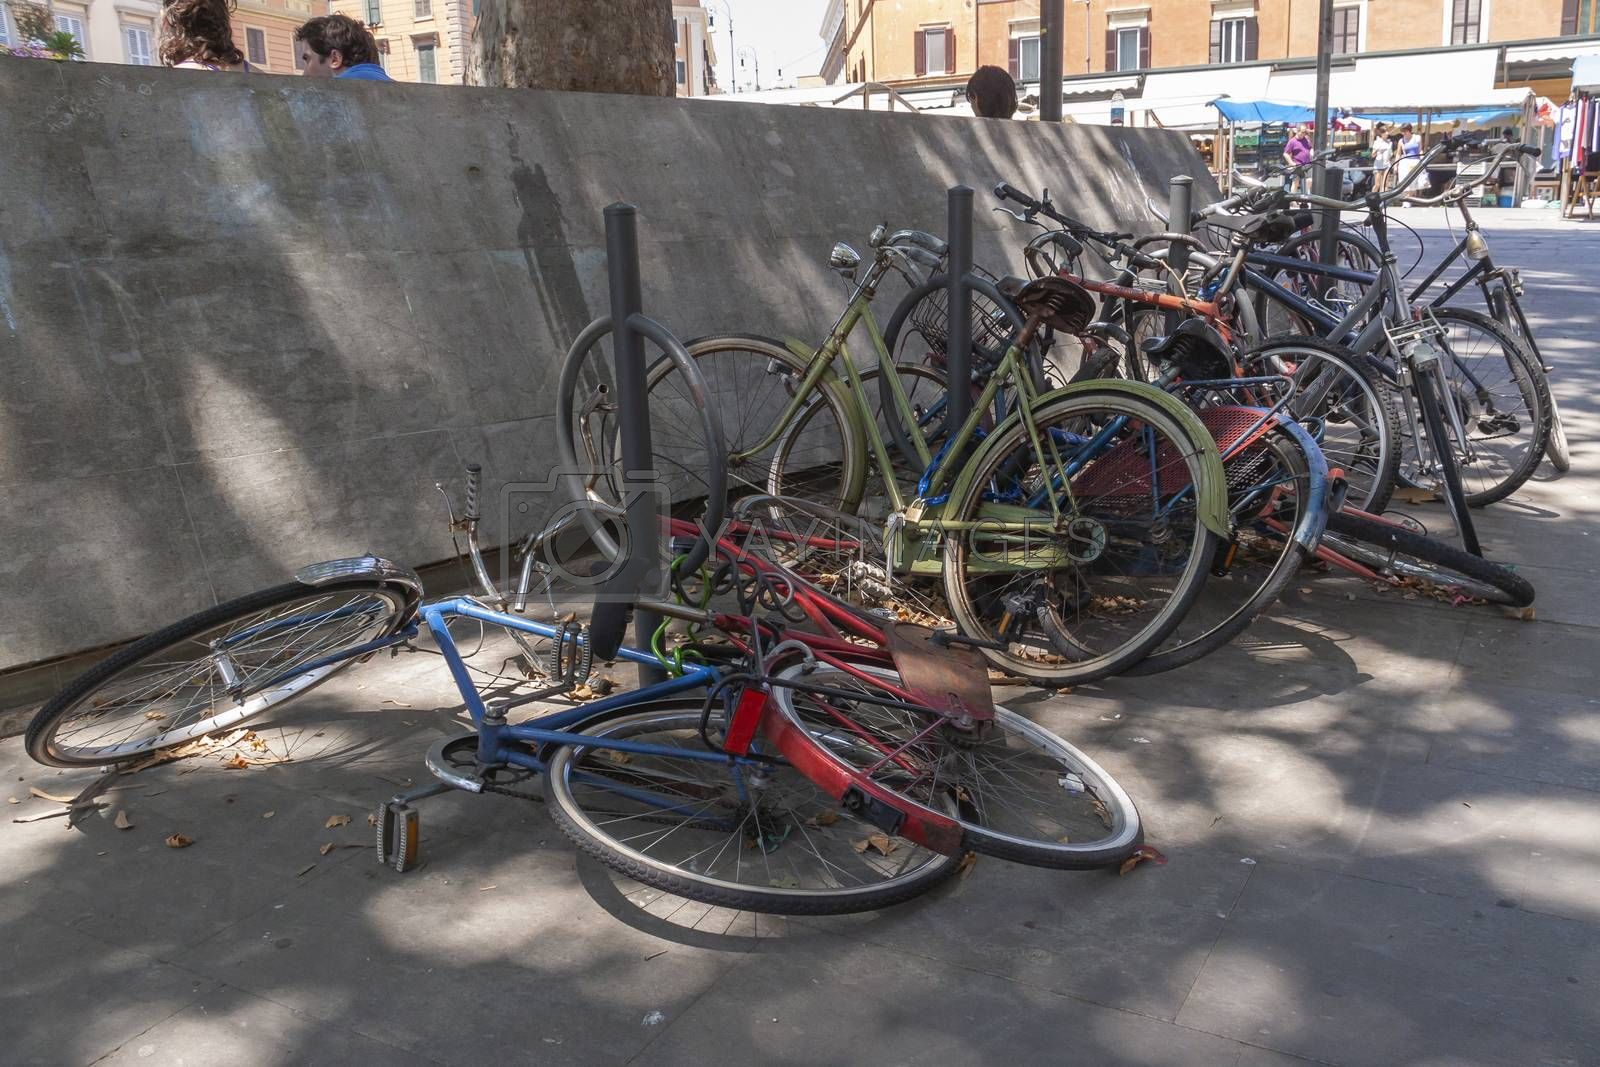 Rome, Italy - June 28, 2010: A lot of bicycles, old, some broken, remain abandoned and rusting in a street in Rome.